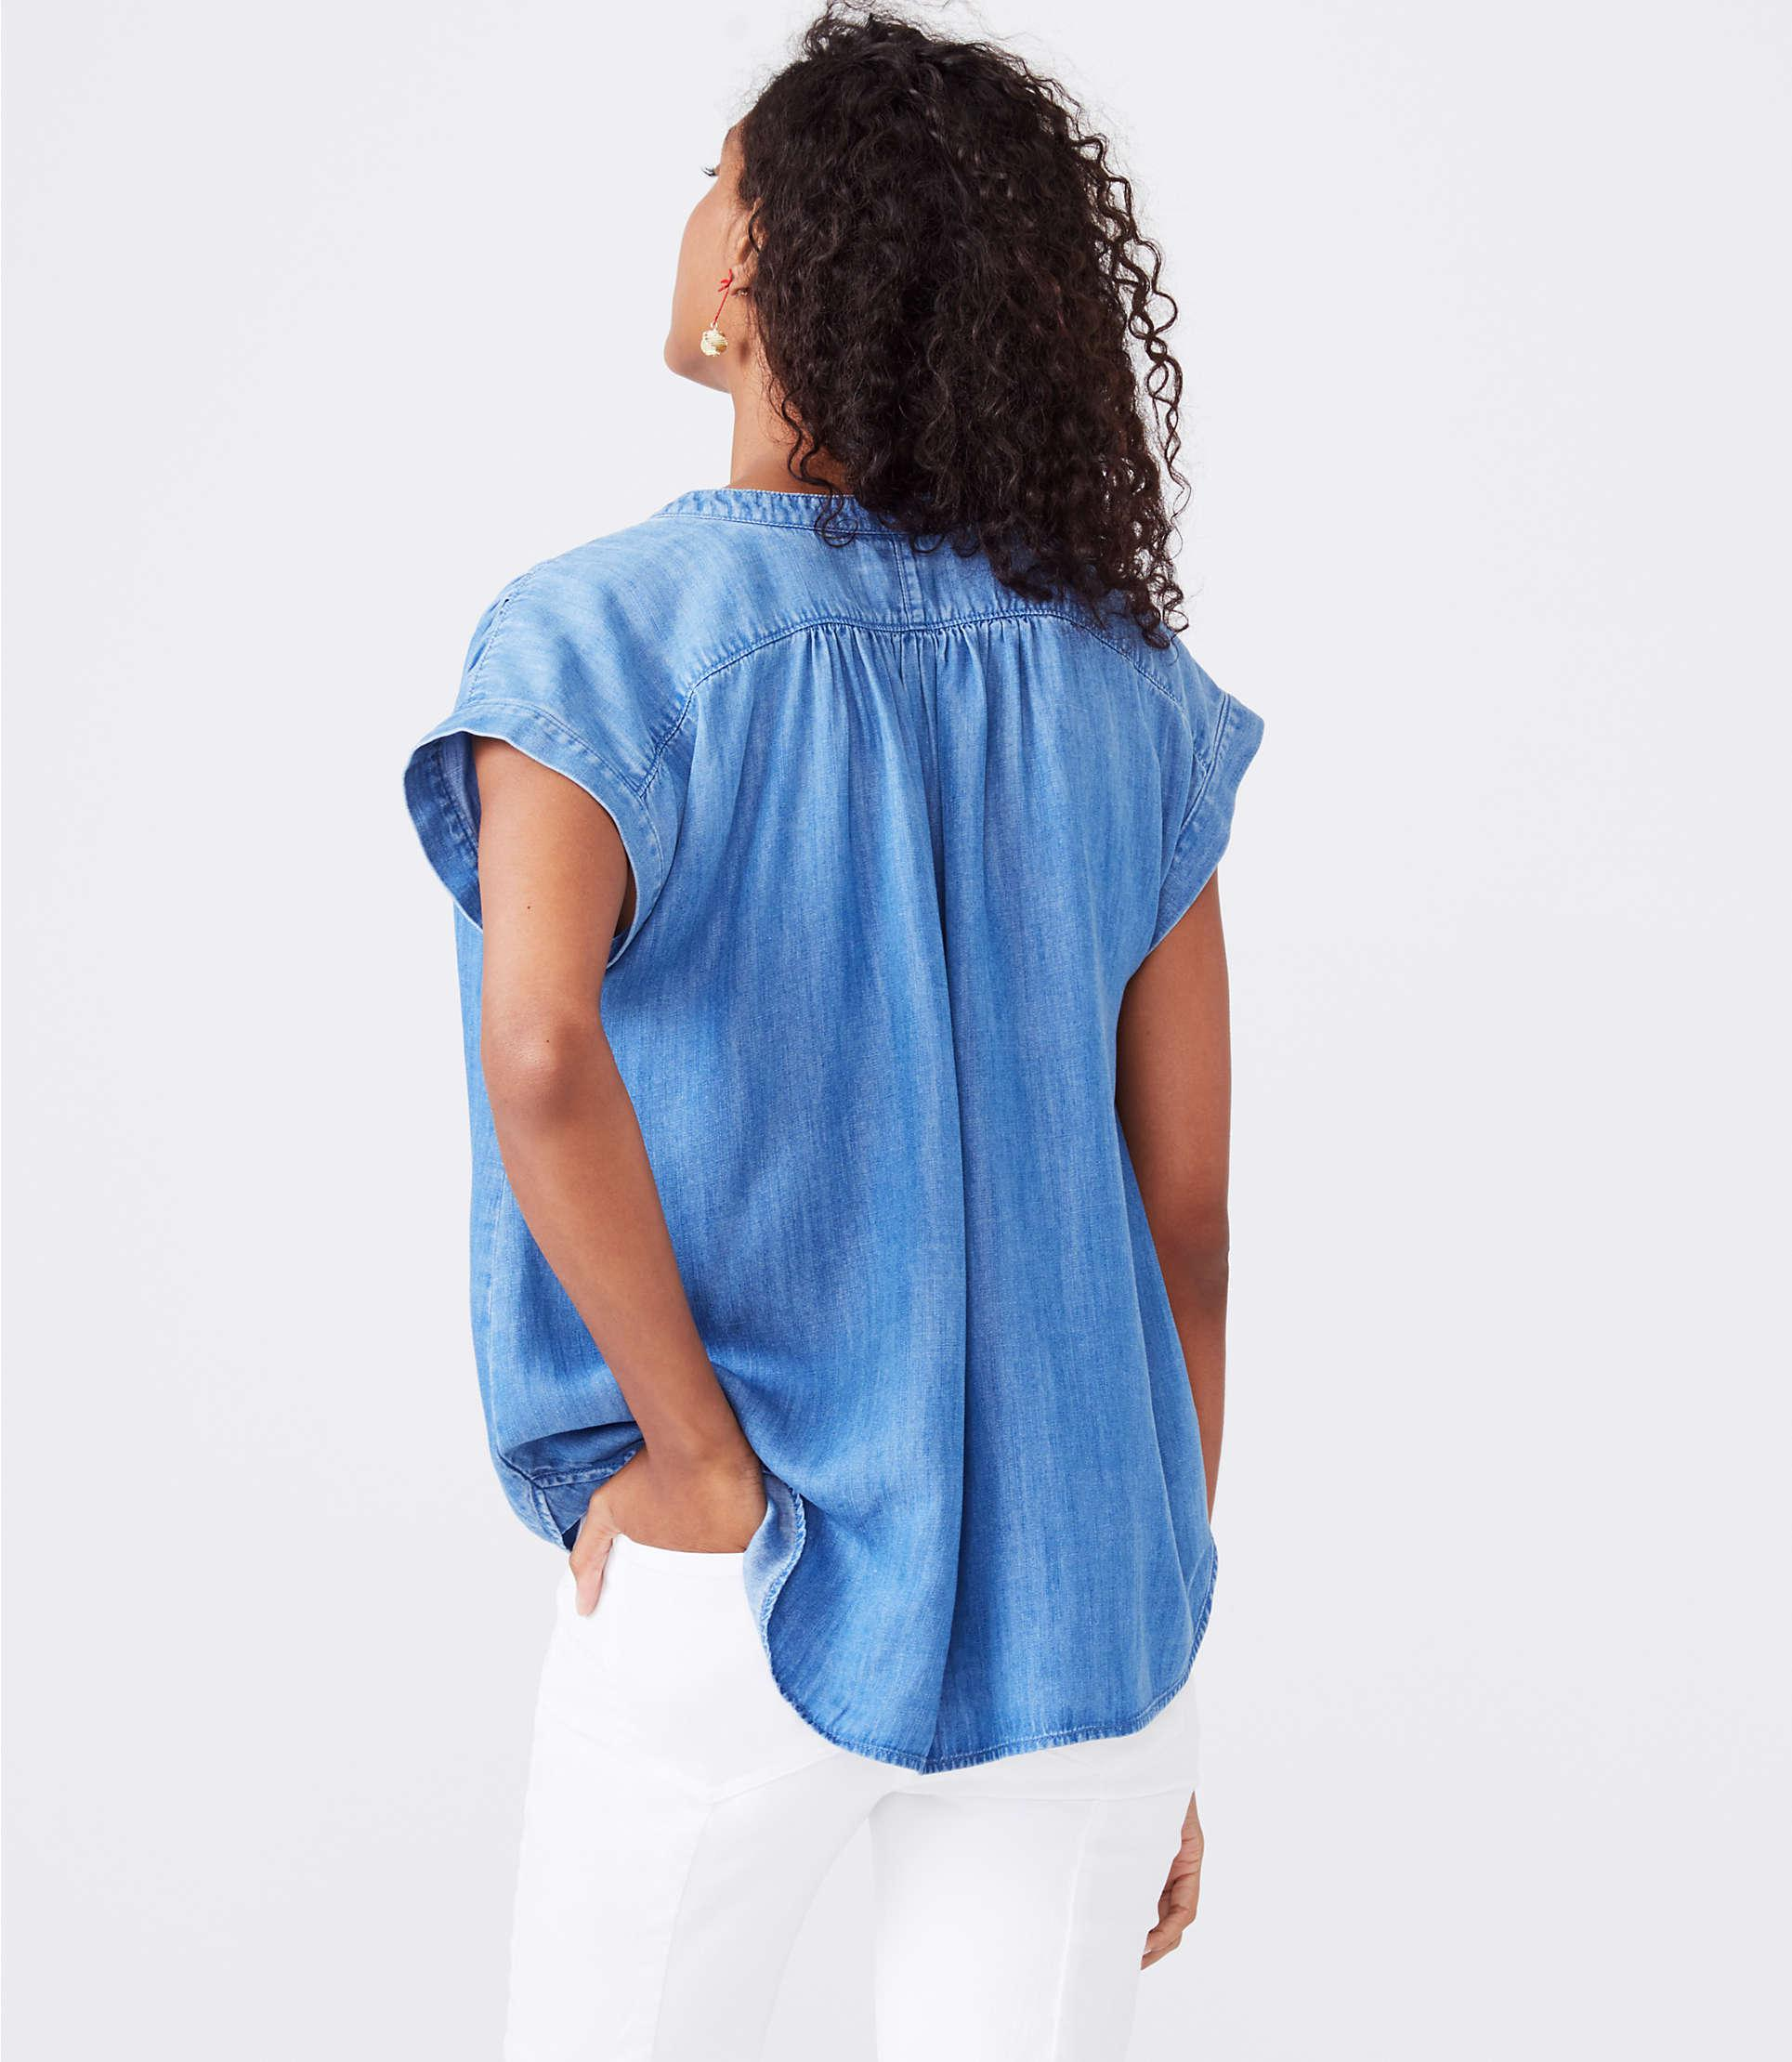 e24a4fb7 Gallery. Previously sold at: Lou & Grey · Women's Denim Tops ...